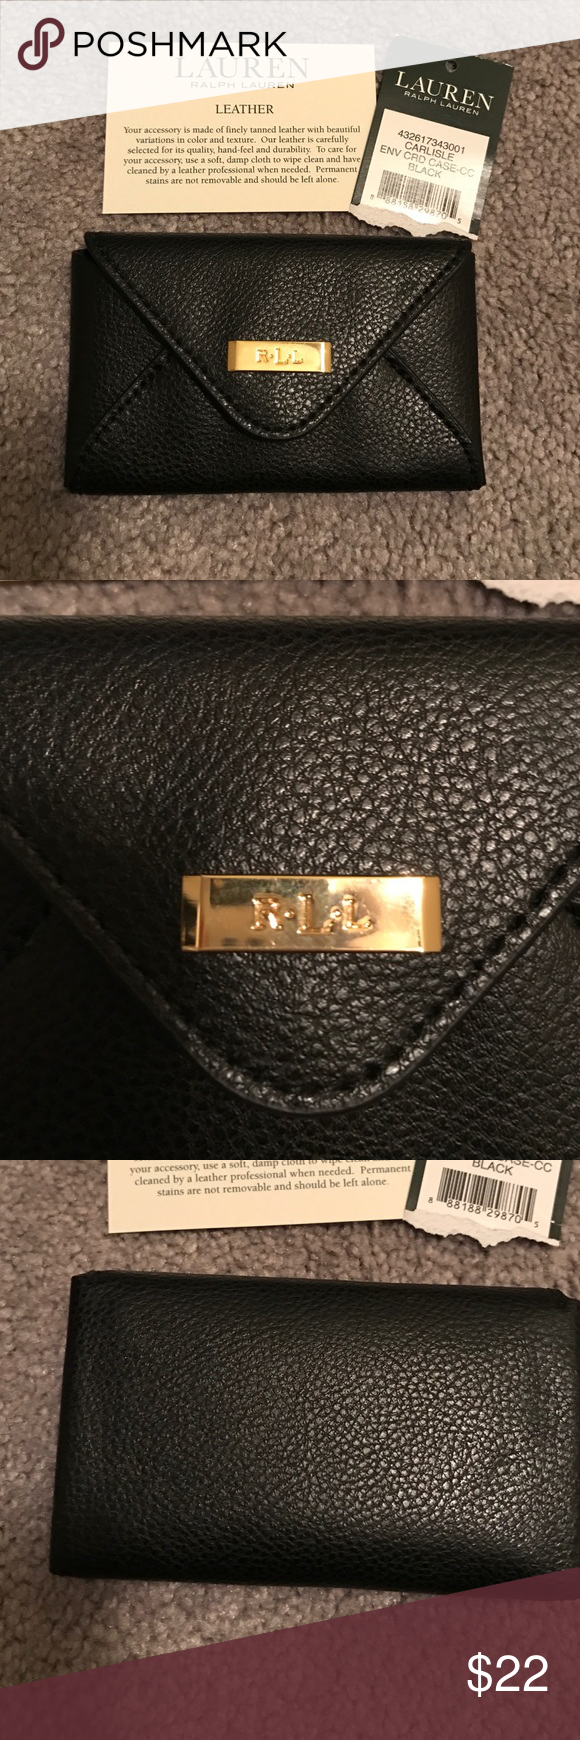 Ralph lauren black leather card case nwt leather card case card ralph lauren black leather card case perfect for credit cards or business cards snap closure ralph lauren accessories key card holders colourmoves